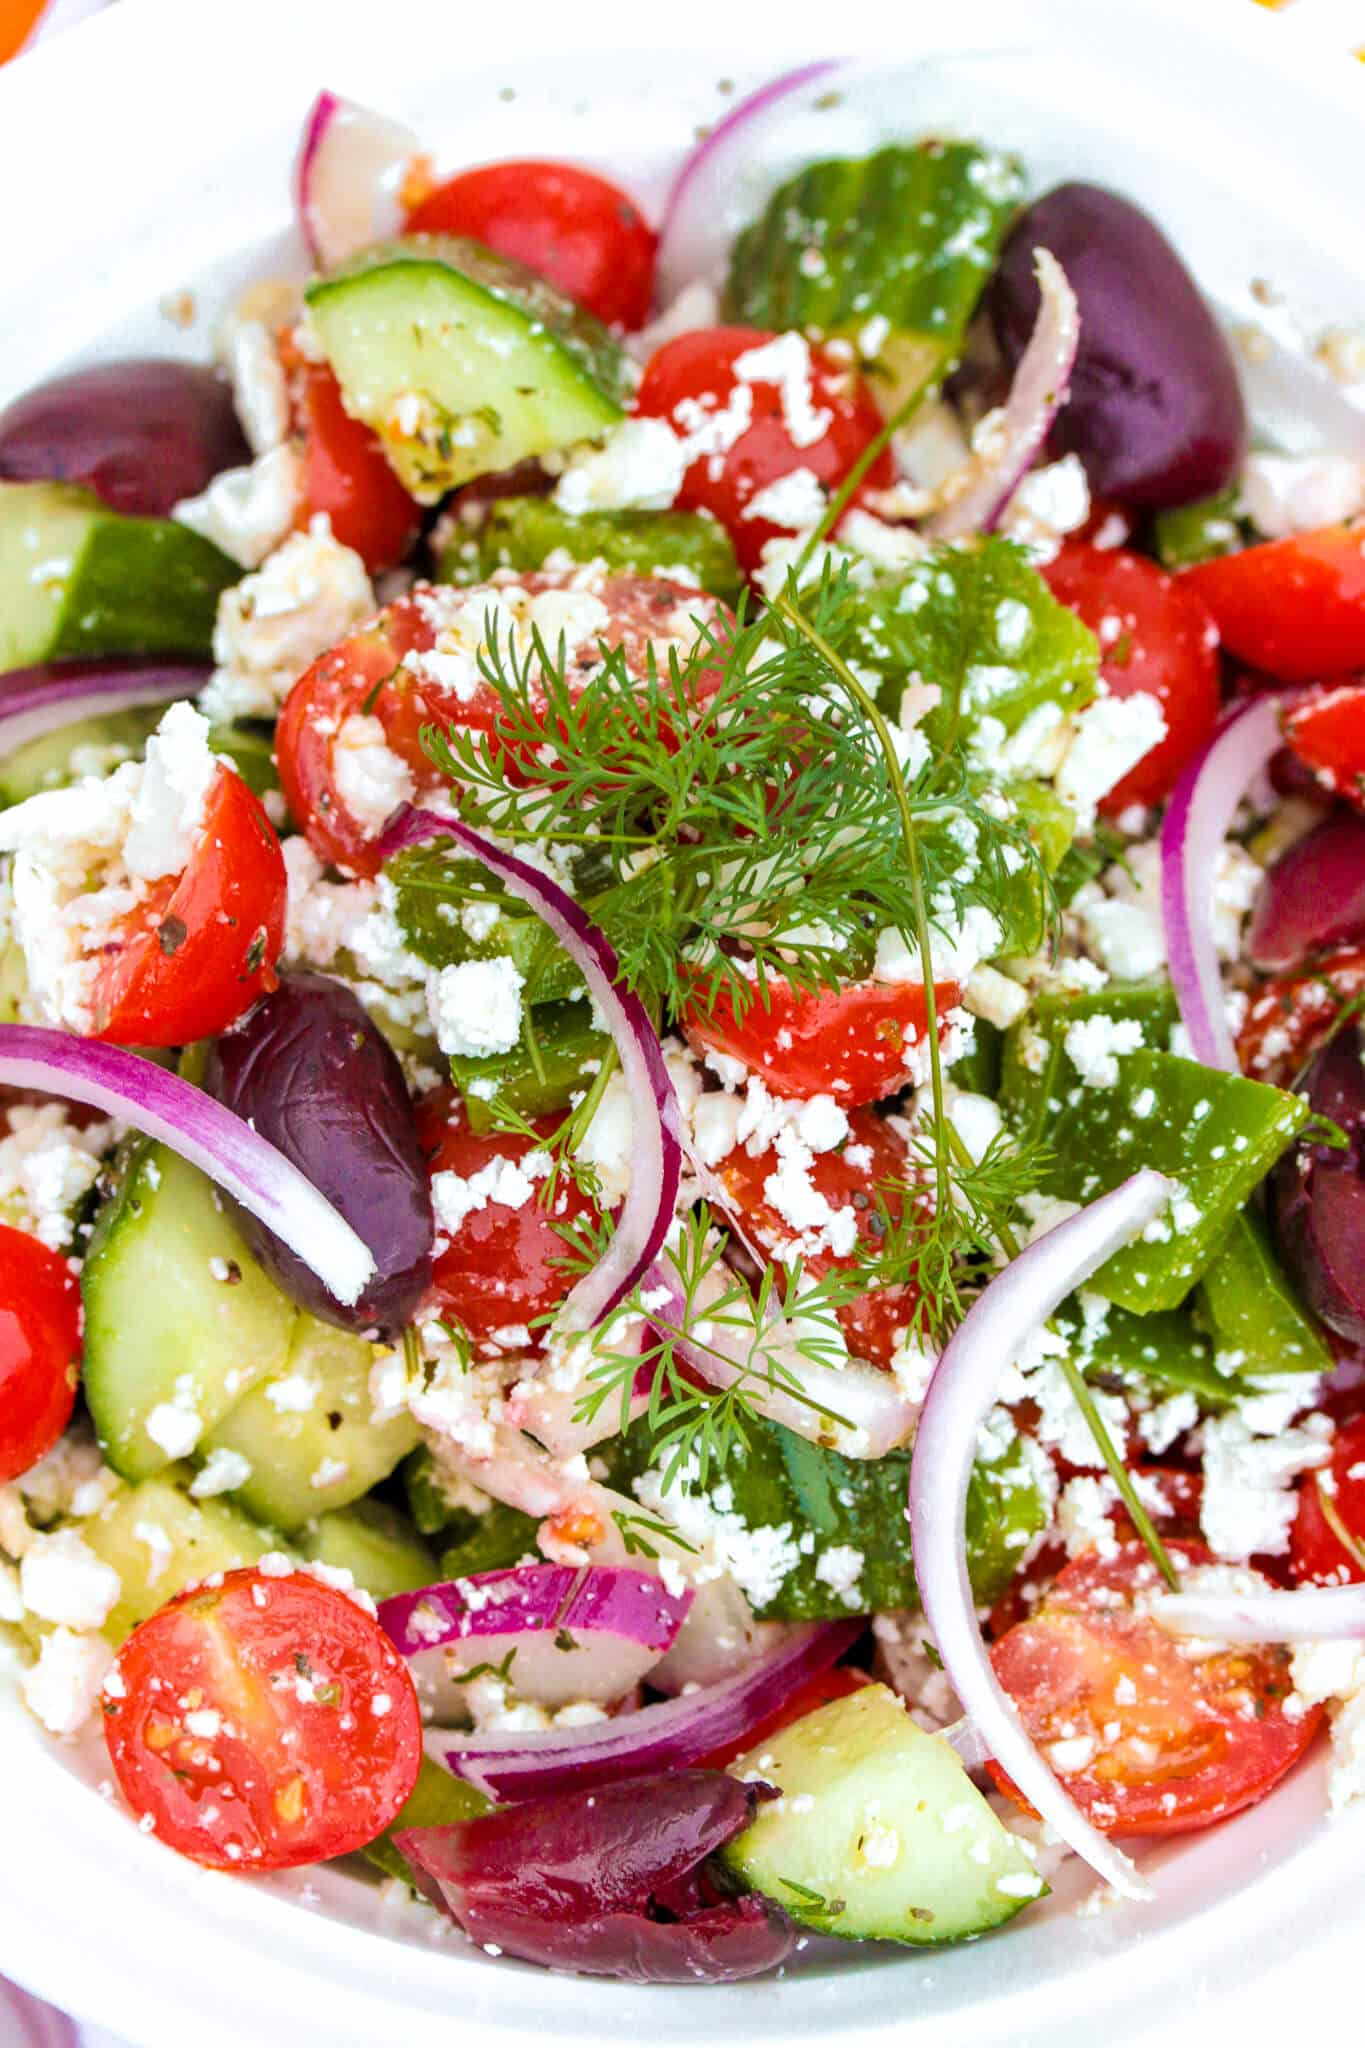 This easy Greek salad is one of my favorite authentic Greek recipes! It comes out fresh and delicious every time. #gayglobetrotter #greeksalad #salad #greekrecipe #tomato #cucumber #greek